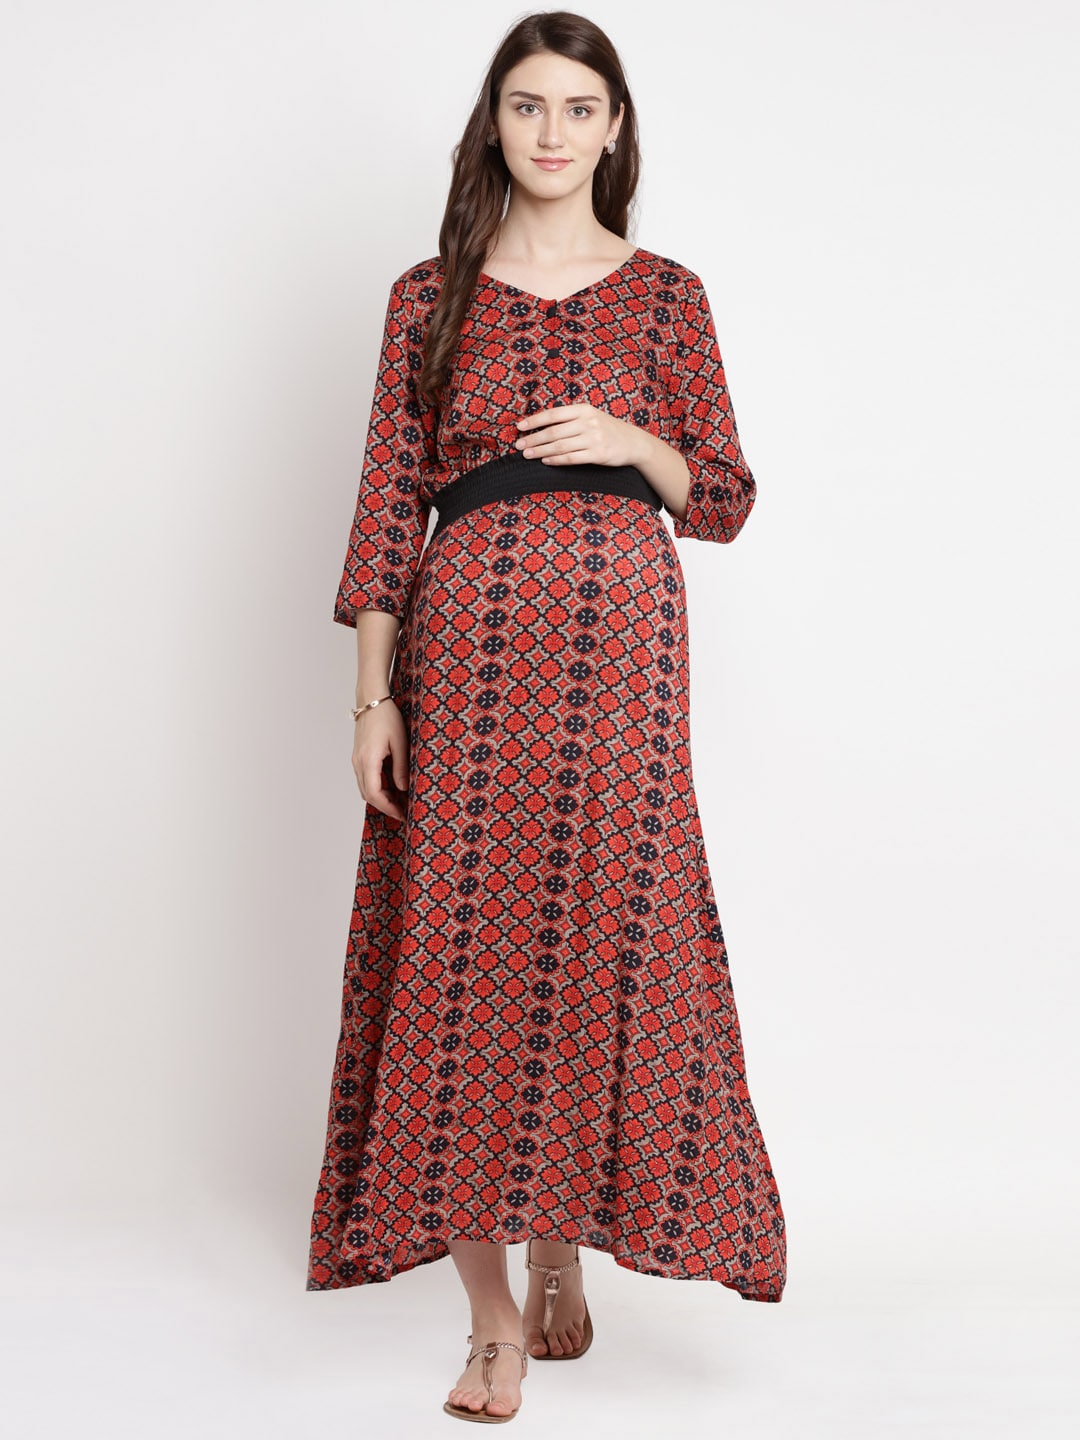 c678cd7f723 Maternity Dresses - Buy Pregnancy Dress Online in India